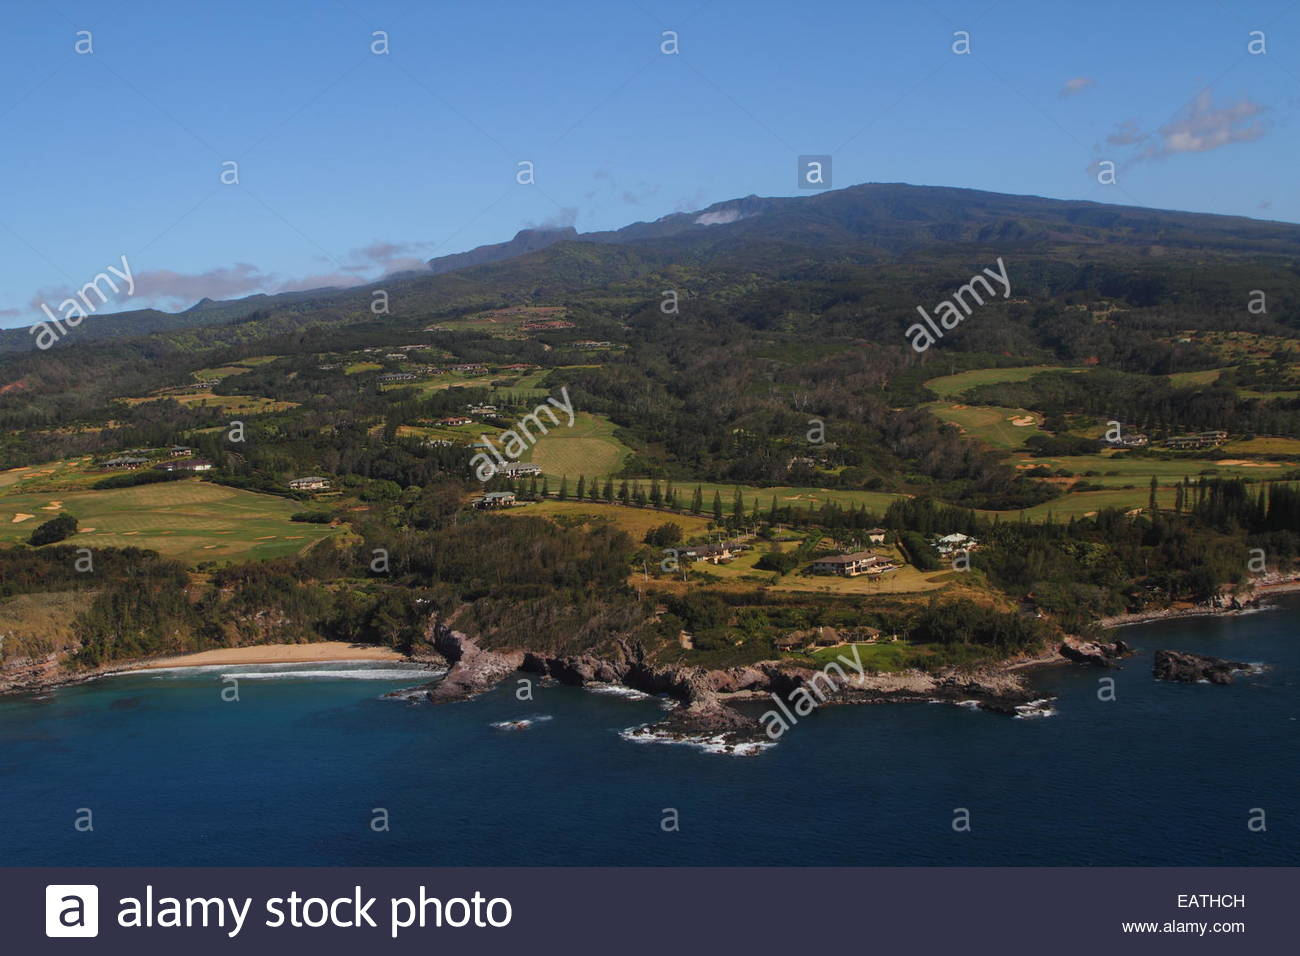 An aerial view of secluded Slaughter House Beach. - Stock Image